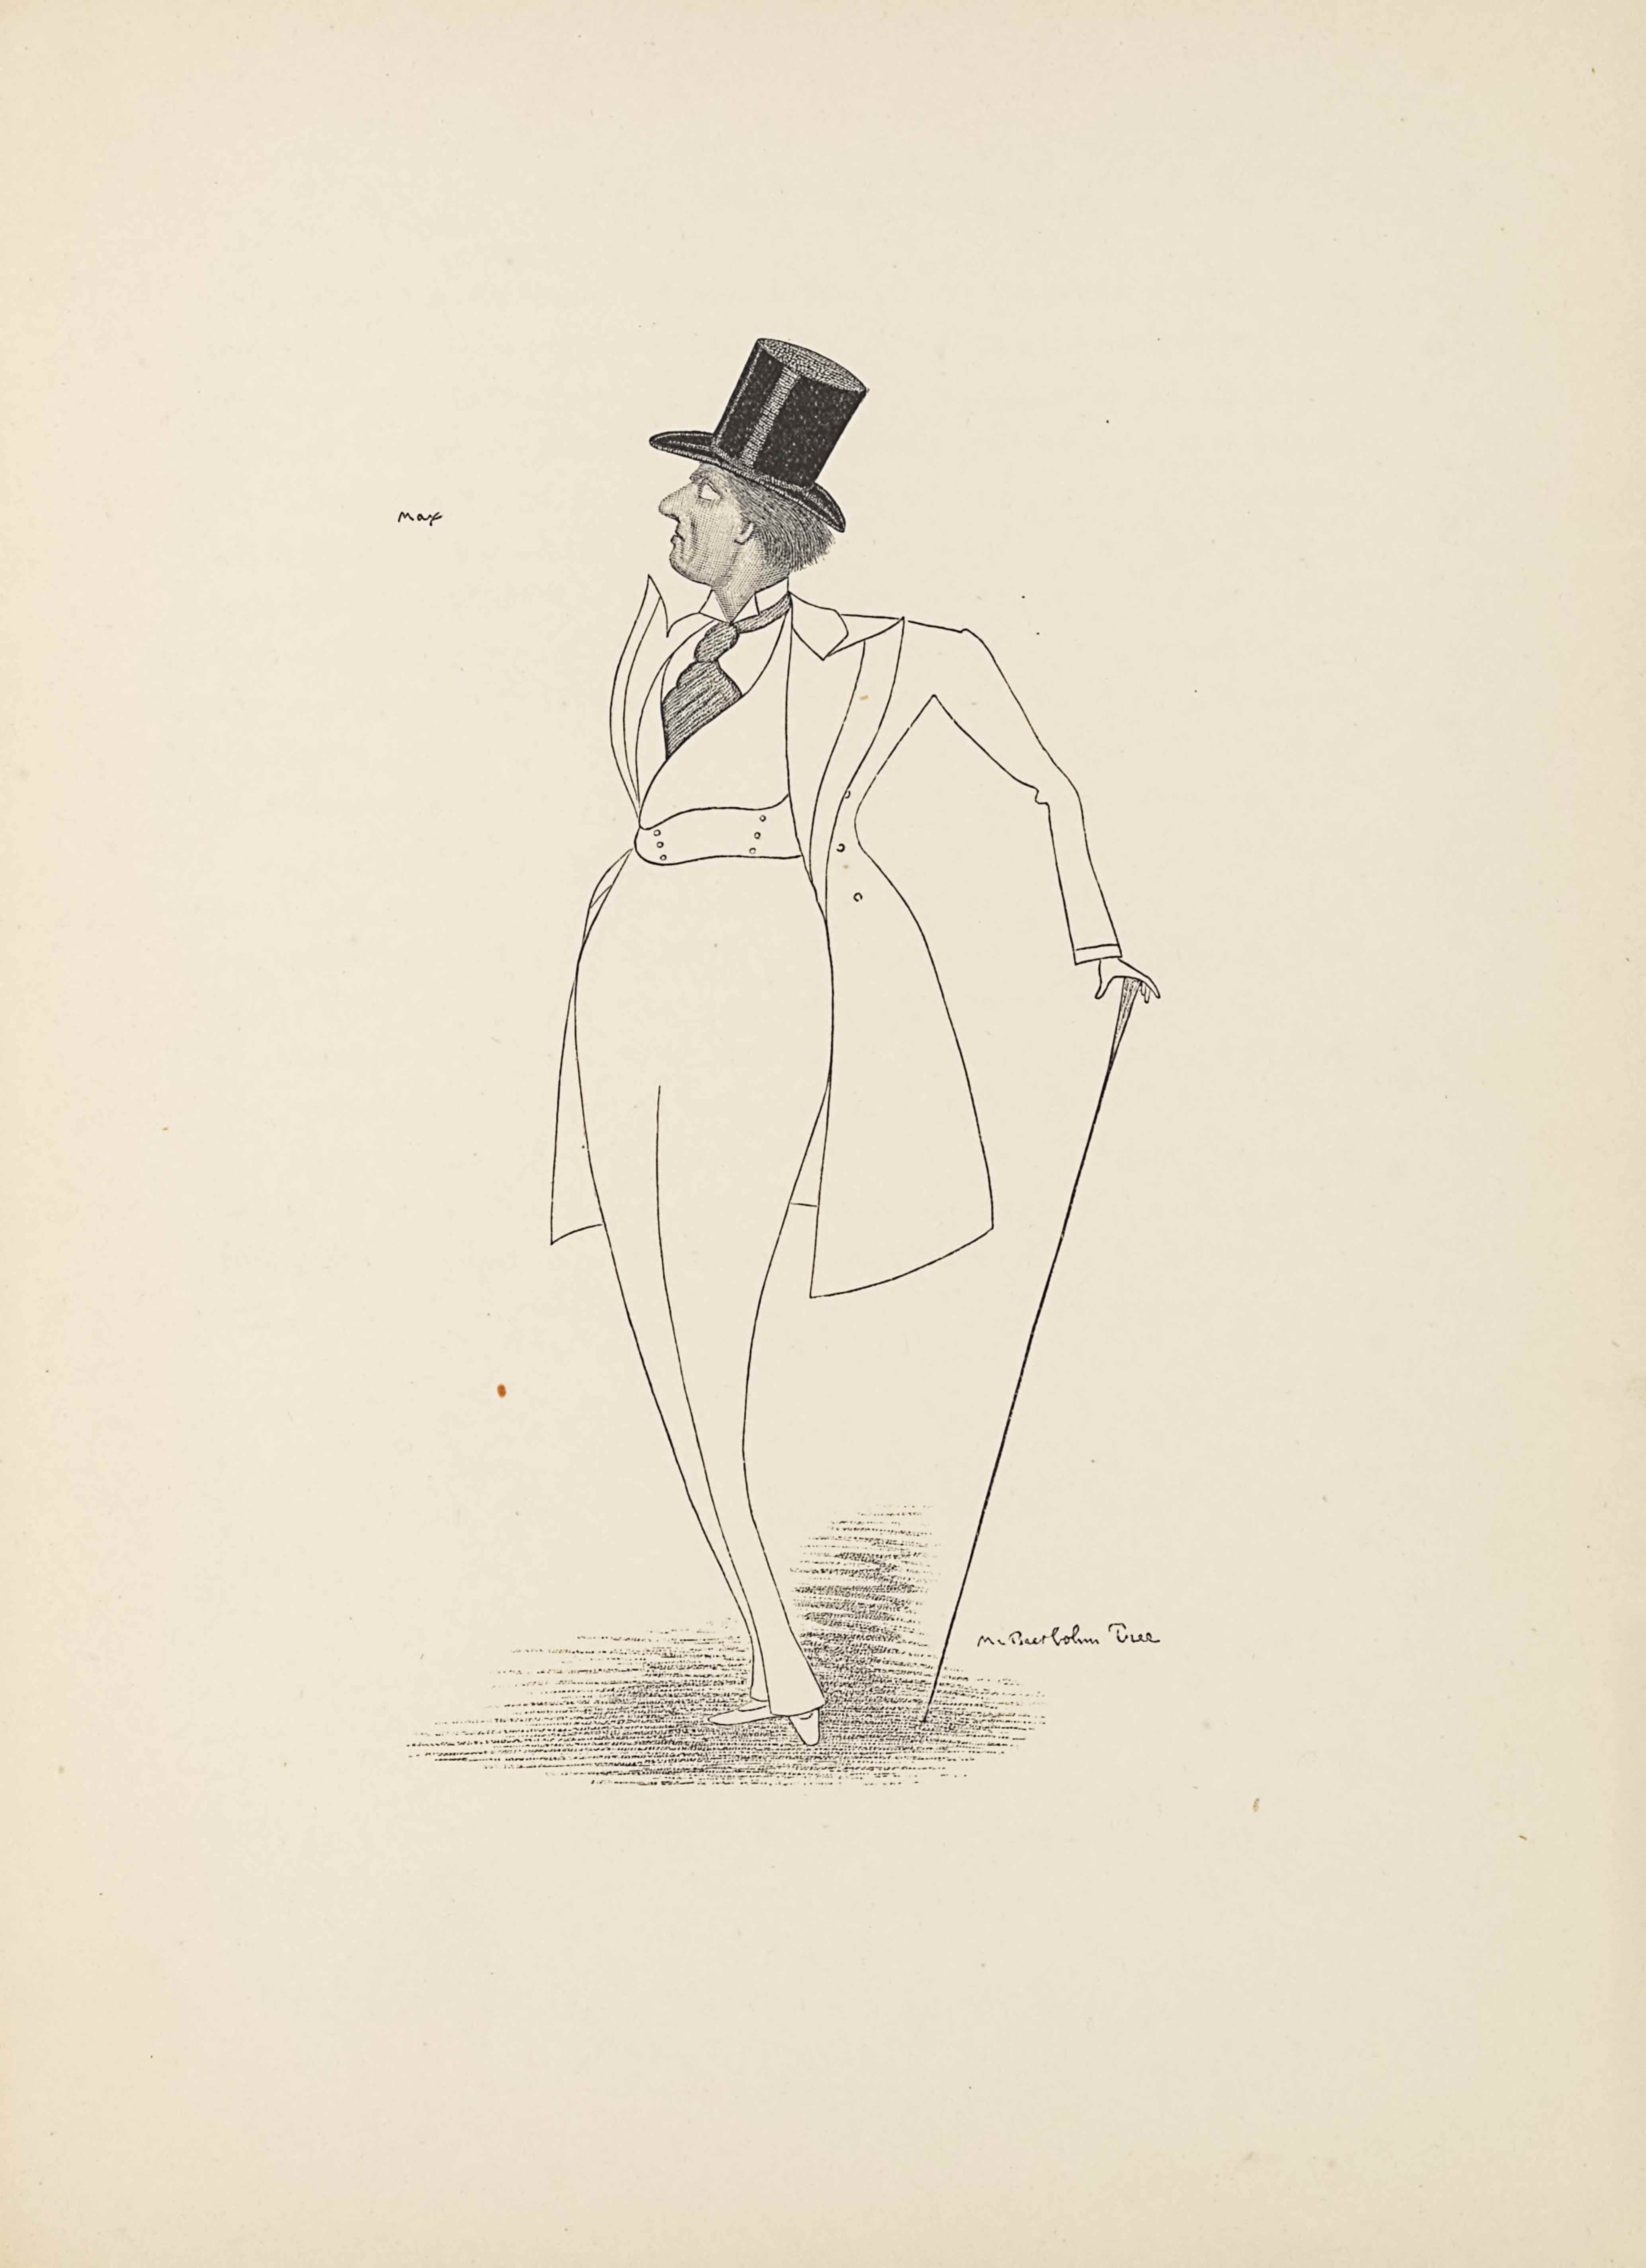 "This wood engraving of a drawing is borderless and in portrait orientation. A full-length caricature of a man stands centrally, with no background or setting. The man is turned slightly to the left of the page, but his head is turned even further to the left, showing the profile of his face. He is wearing pointed-toe shoes and plain pants. His legs are long and his upper body is short. His legs are thin at the ankle and grow wide at the hips. On top he is wearing a collared shirt with a large, dark tie and a vest over top both of those pieces. At the waist the vest has three rows of two buttons that are lined up vertically. He also wears a long open overcoat, which is tailored in at the waist and has three buttons. The coat has a large collar and tight sleeves. The man's left arm is lifted up and out at his waist and holding a walking cane leaned diagonally up to the right from the ground into his hand. The man's right arm is pulled behind his back and not visible. The face in profile shows the man frowning with a chin tilted slightly up to the left side of the page. His brows are furrowed. His hair is short and he wears a large black top hat taller than his head. At the man's feet is slight shading in a circular area. To the left of the page, at the height of the man's nose, is the text ""Max,"" which is the artist's first name. To the right of the cane in the bottom right corner of the image is the text: ""Mr. Beerbohm Tree""."